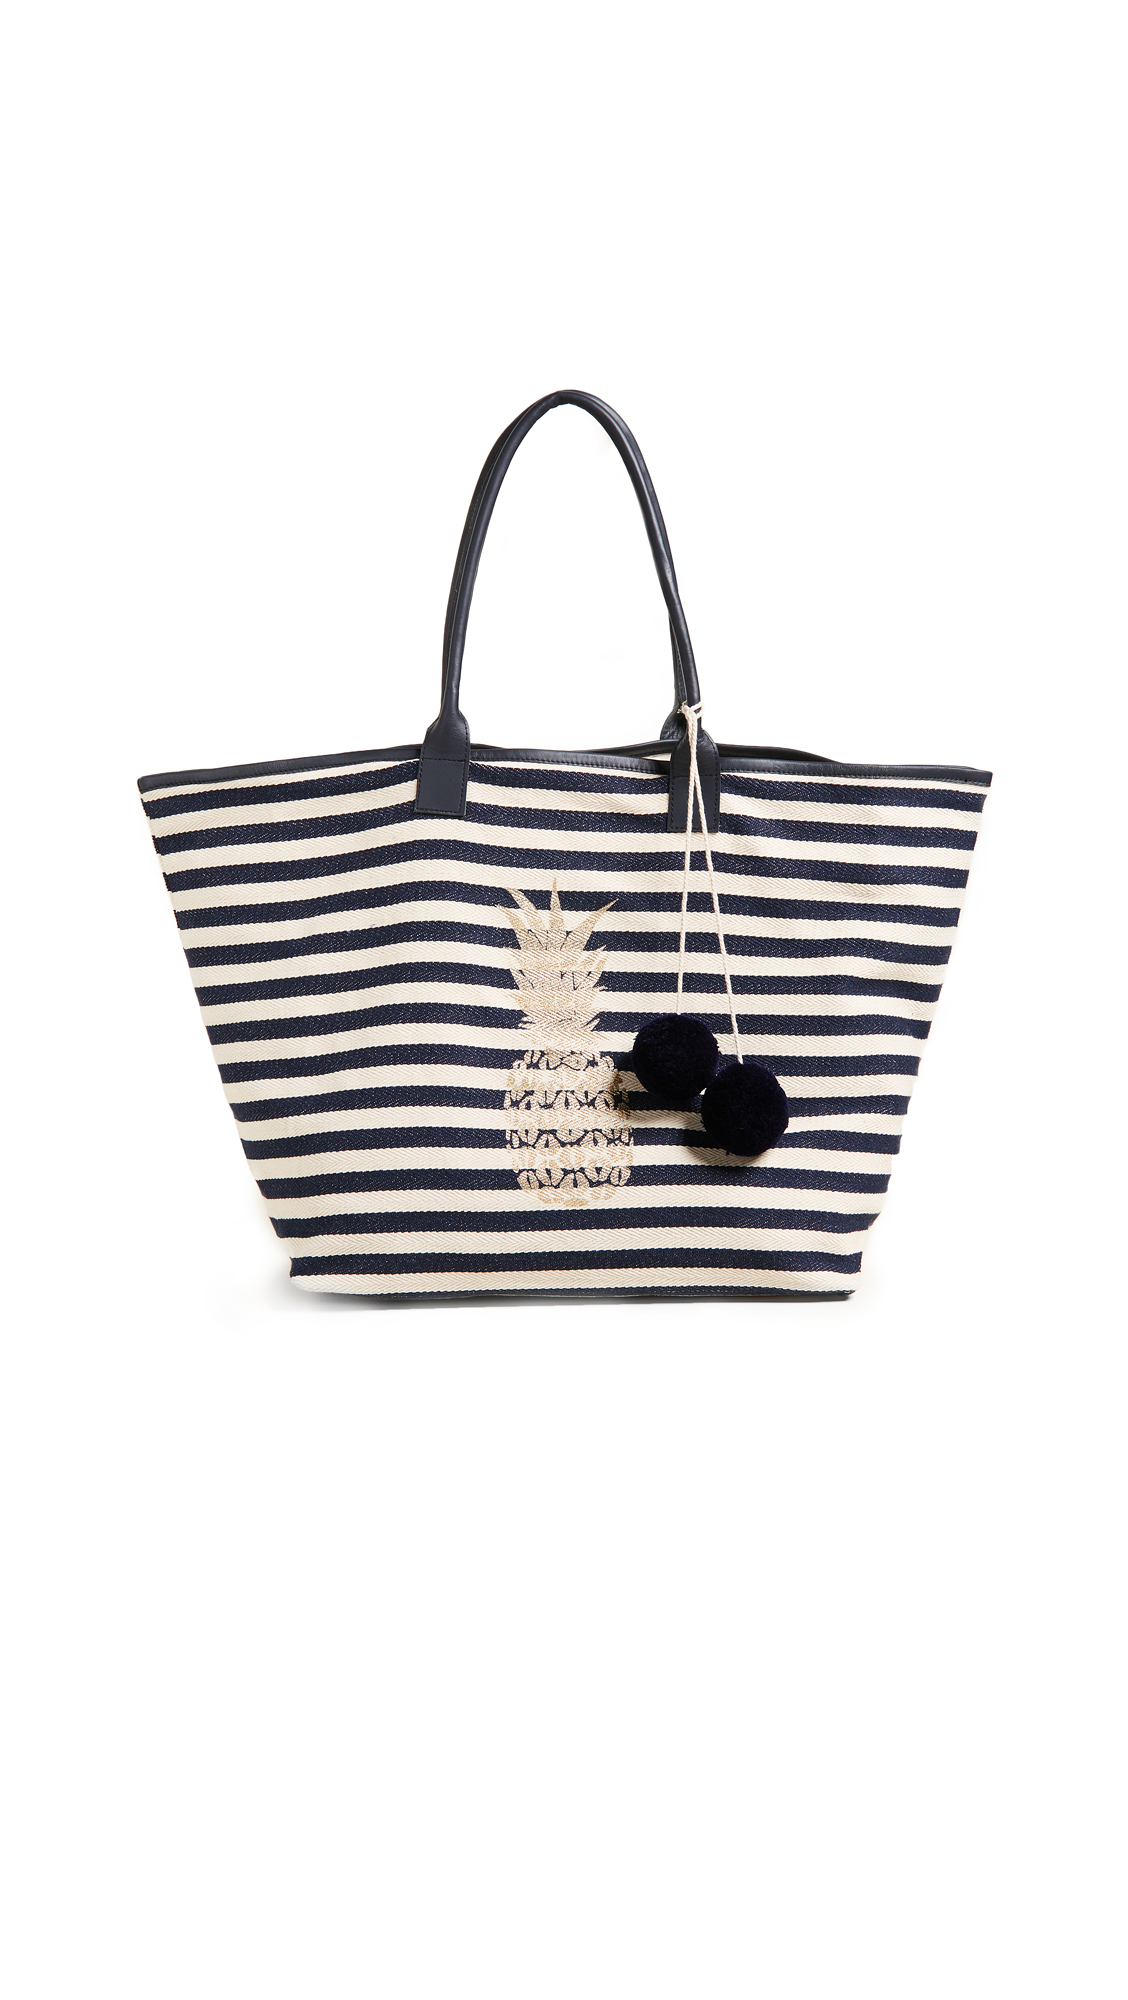 Ashiana London Pineapple Tote